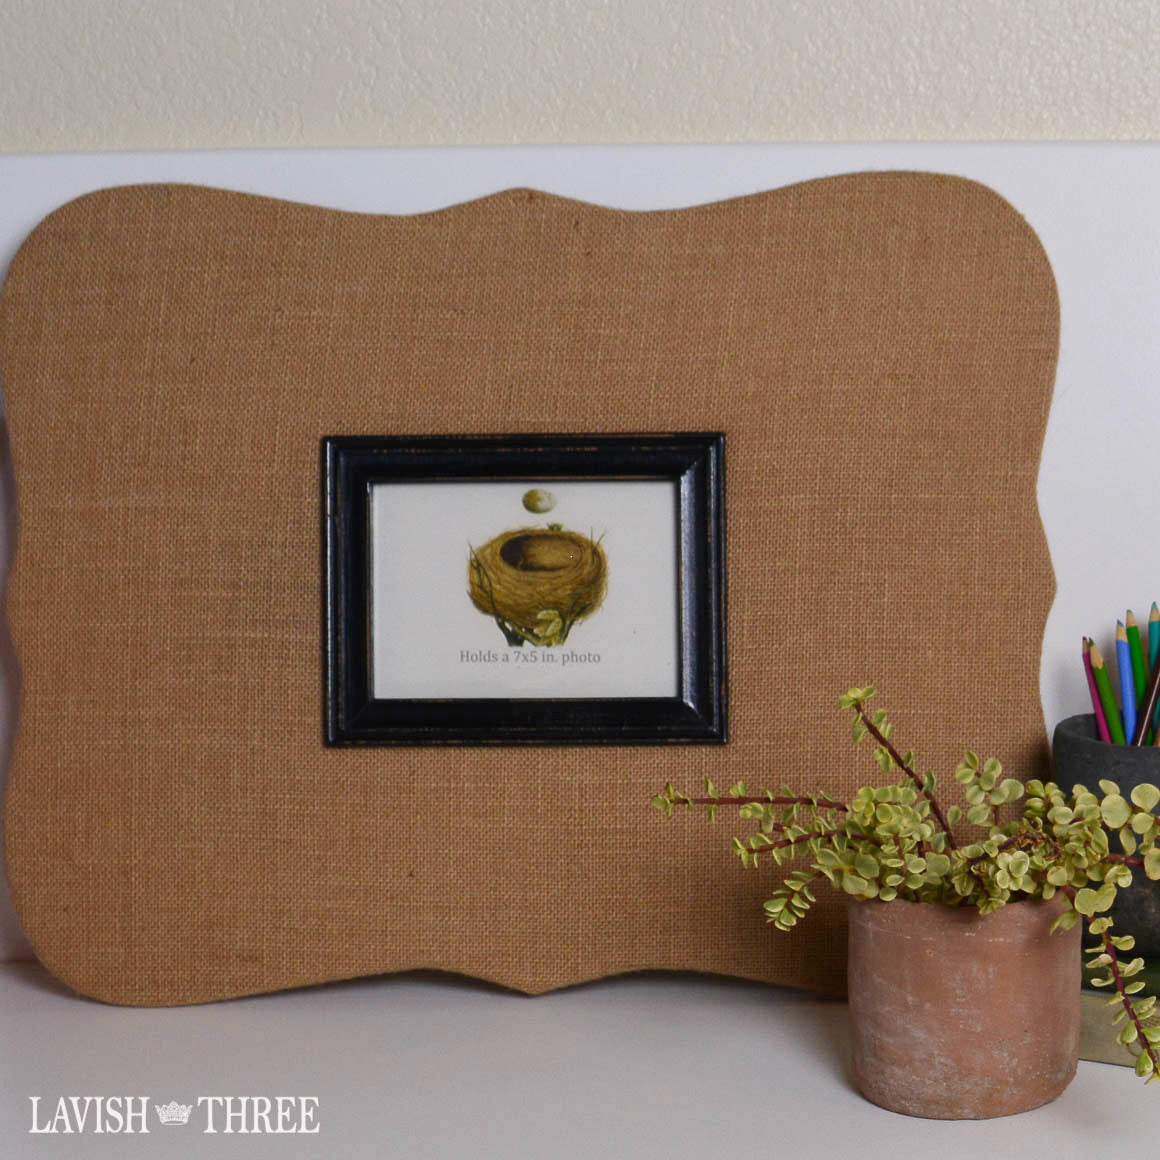 Lavish Planner large burlap organize board with frame, Lavish Three 3